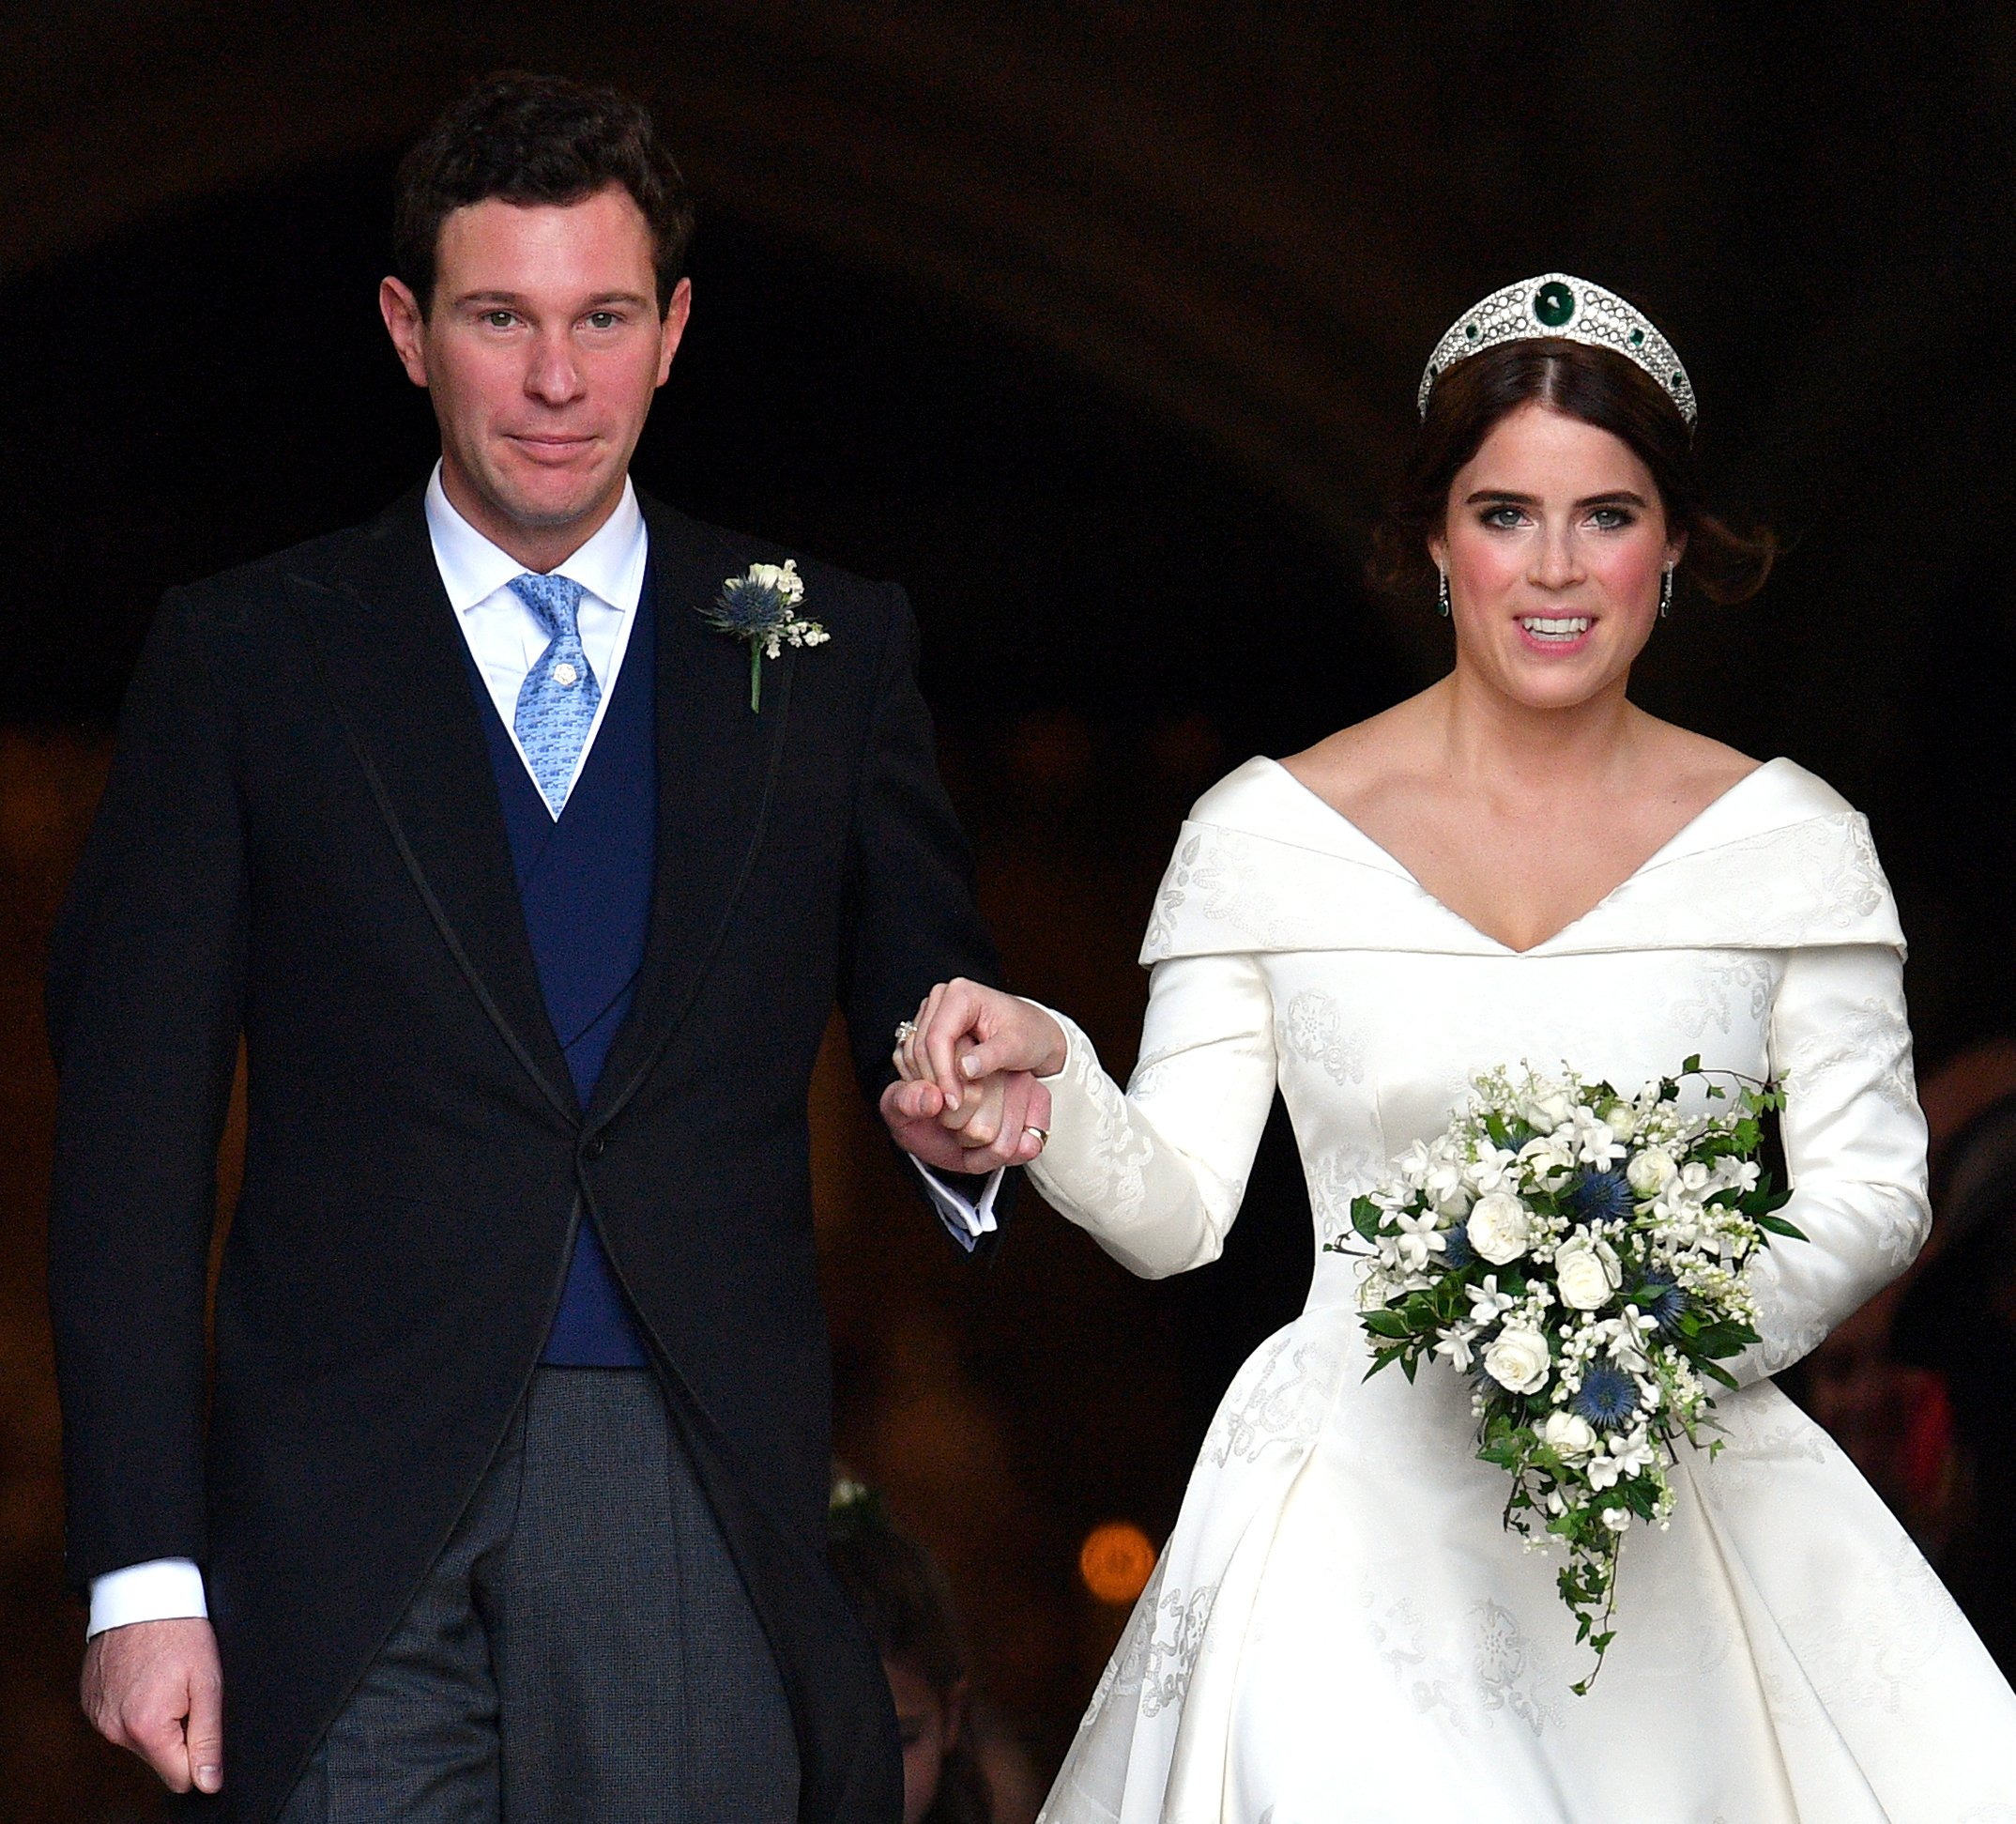 Jack Brooksbank and Princess Eugenie leave St George's Chapel after their wedding ceremony on October 12, 2018, in Windsor, England. | Source: Getty Images.